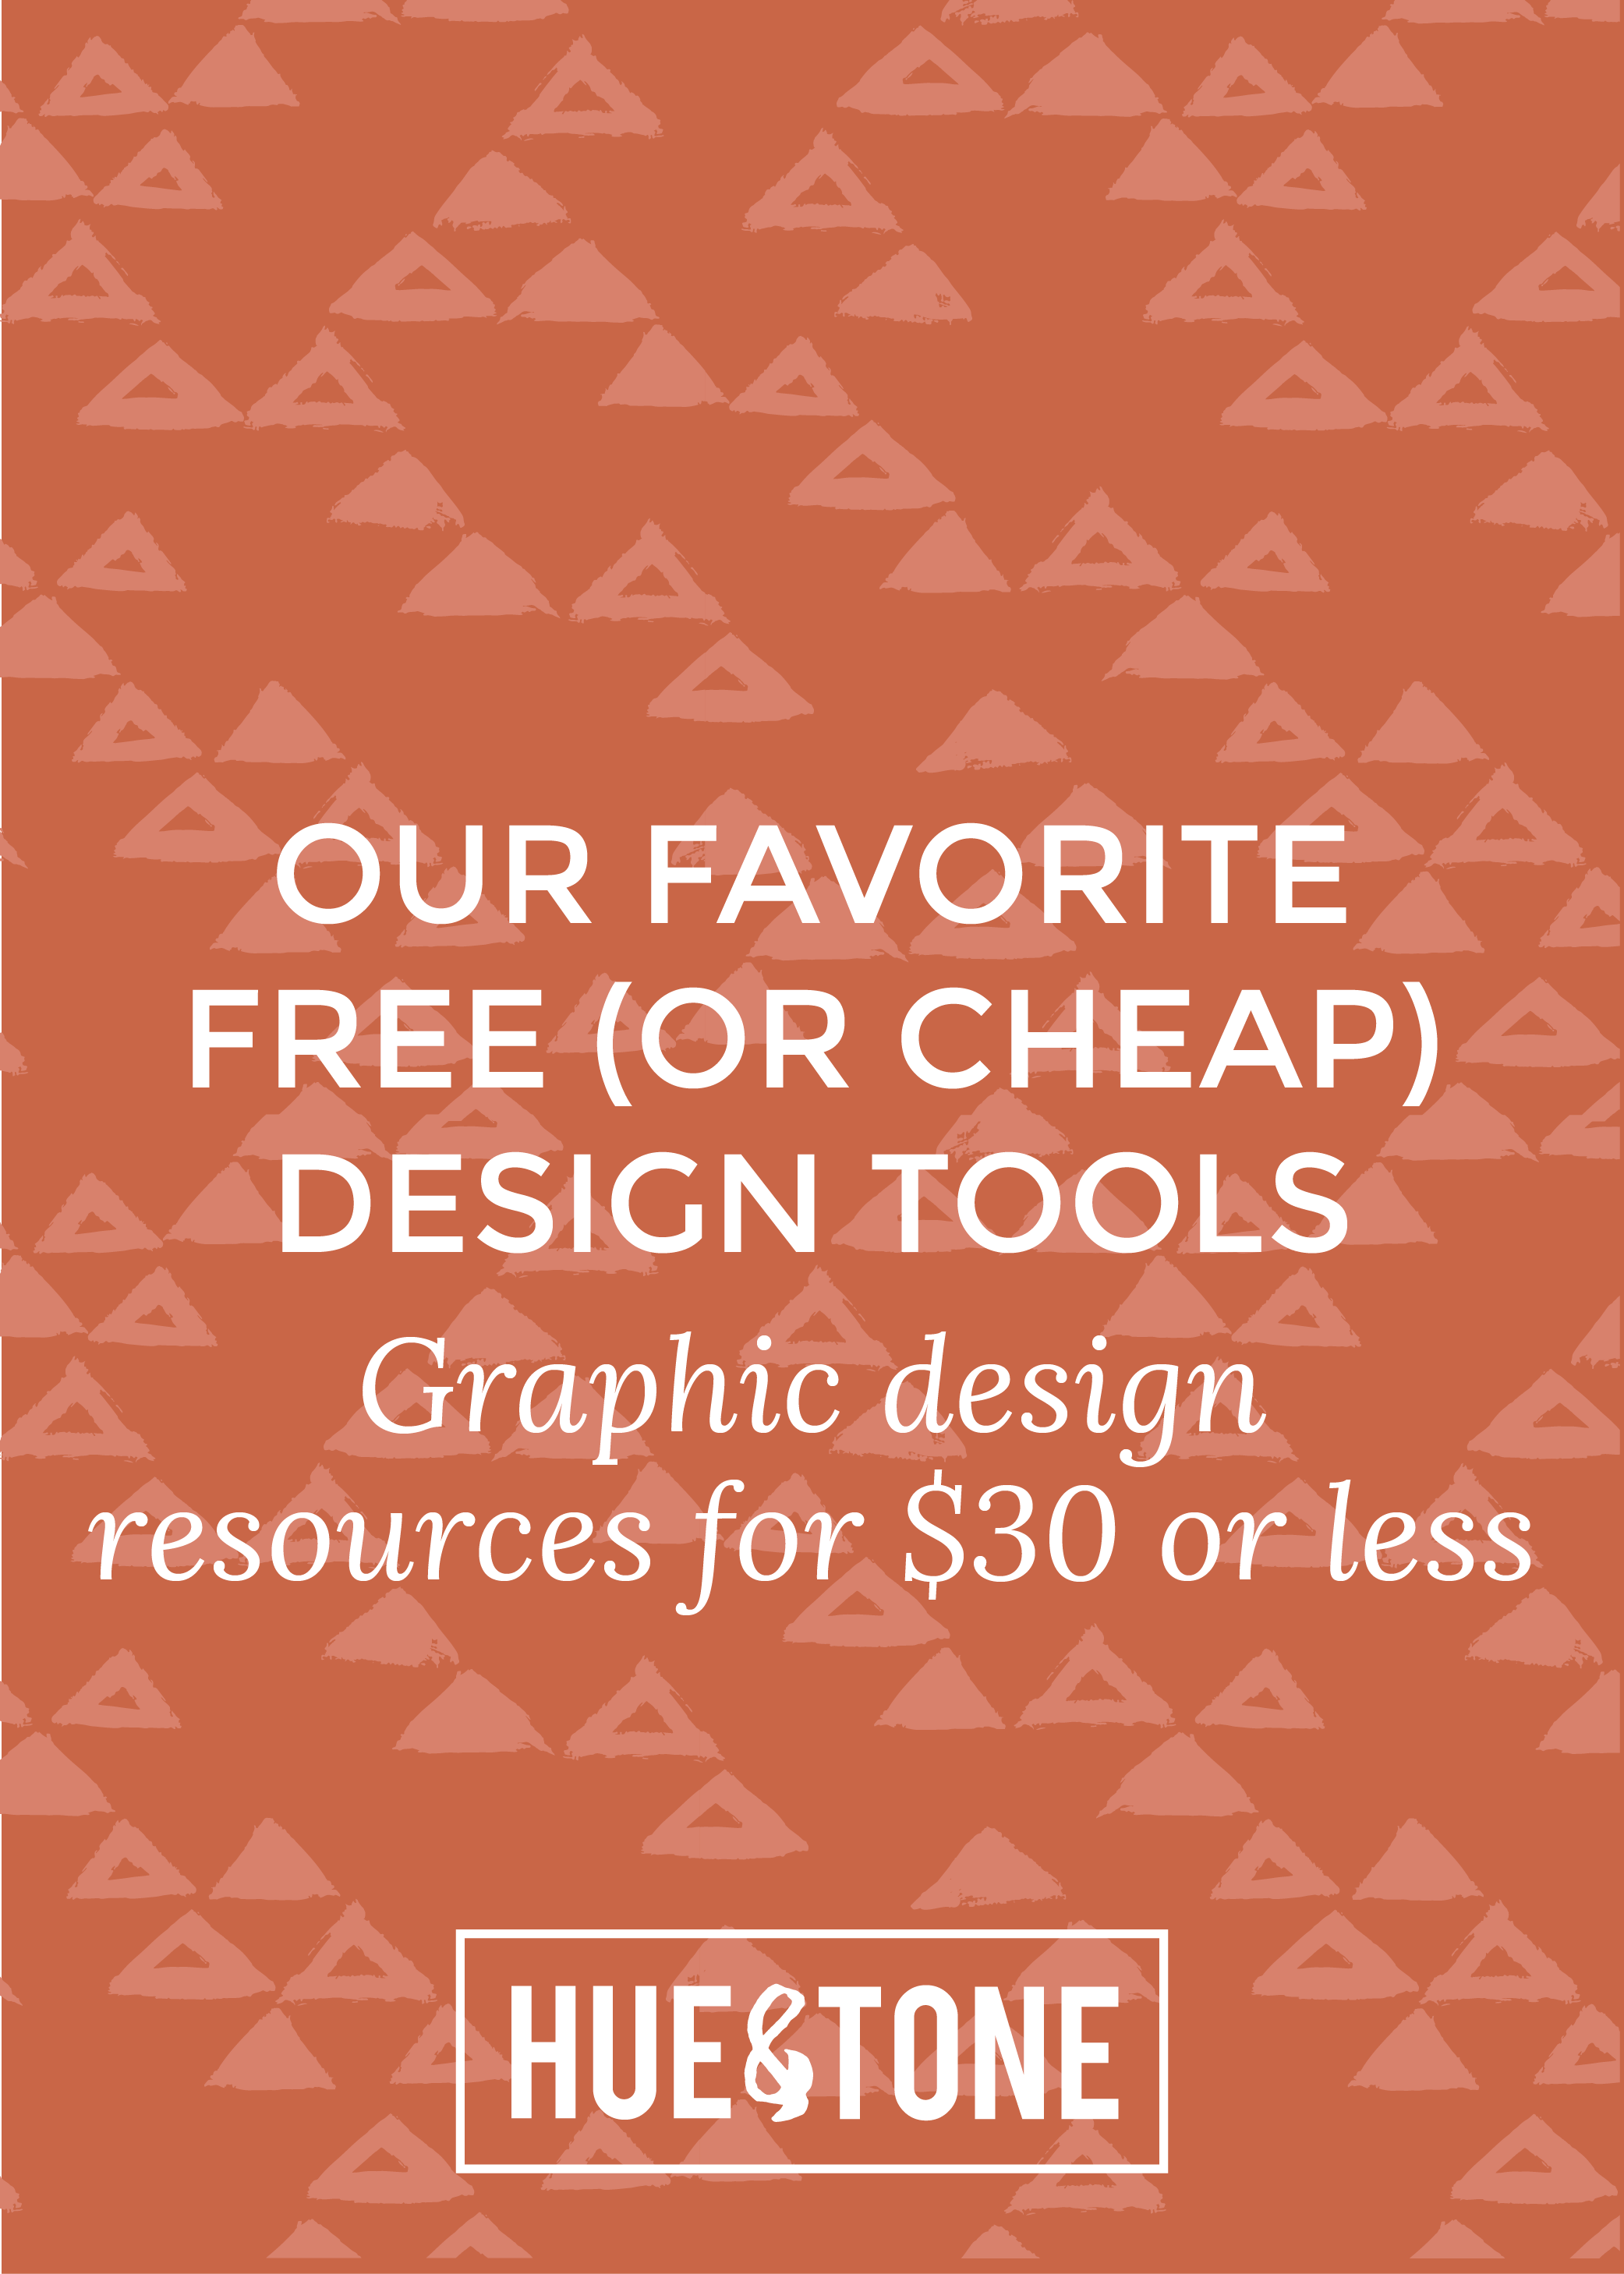 Hue & Tone Favorites: Free (or cheap) graphic design resources -- Hue & Tone Creative